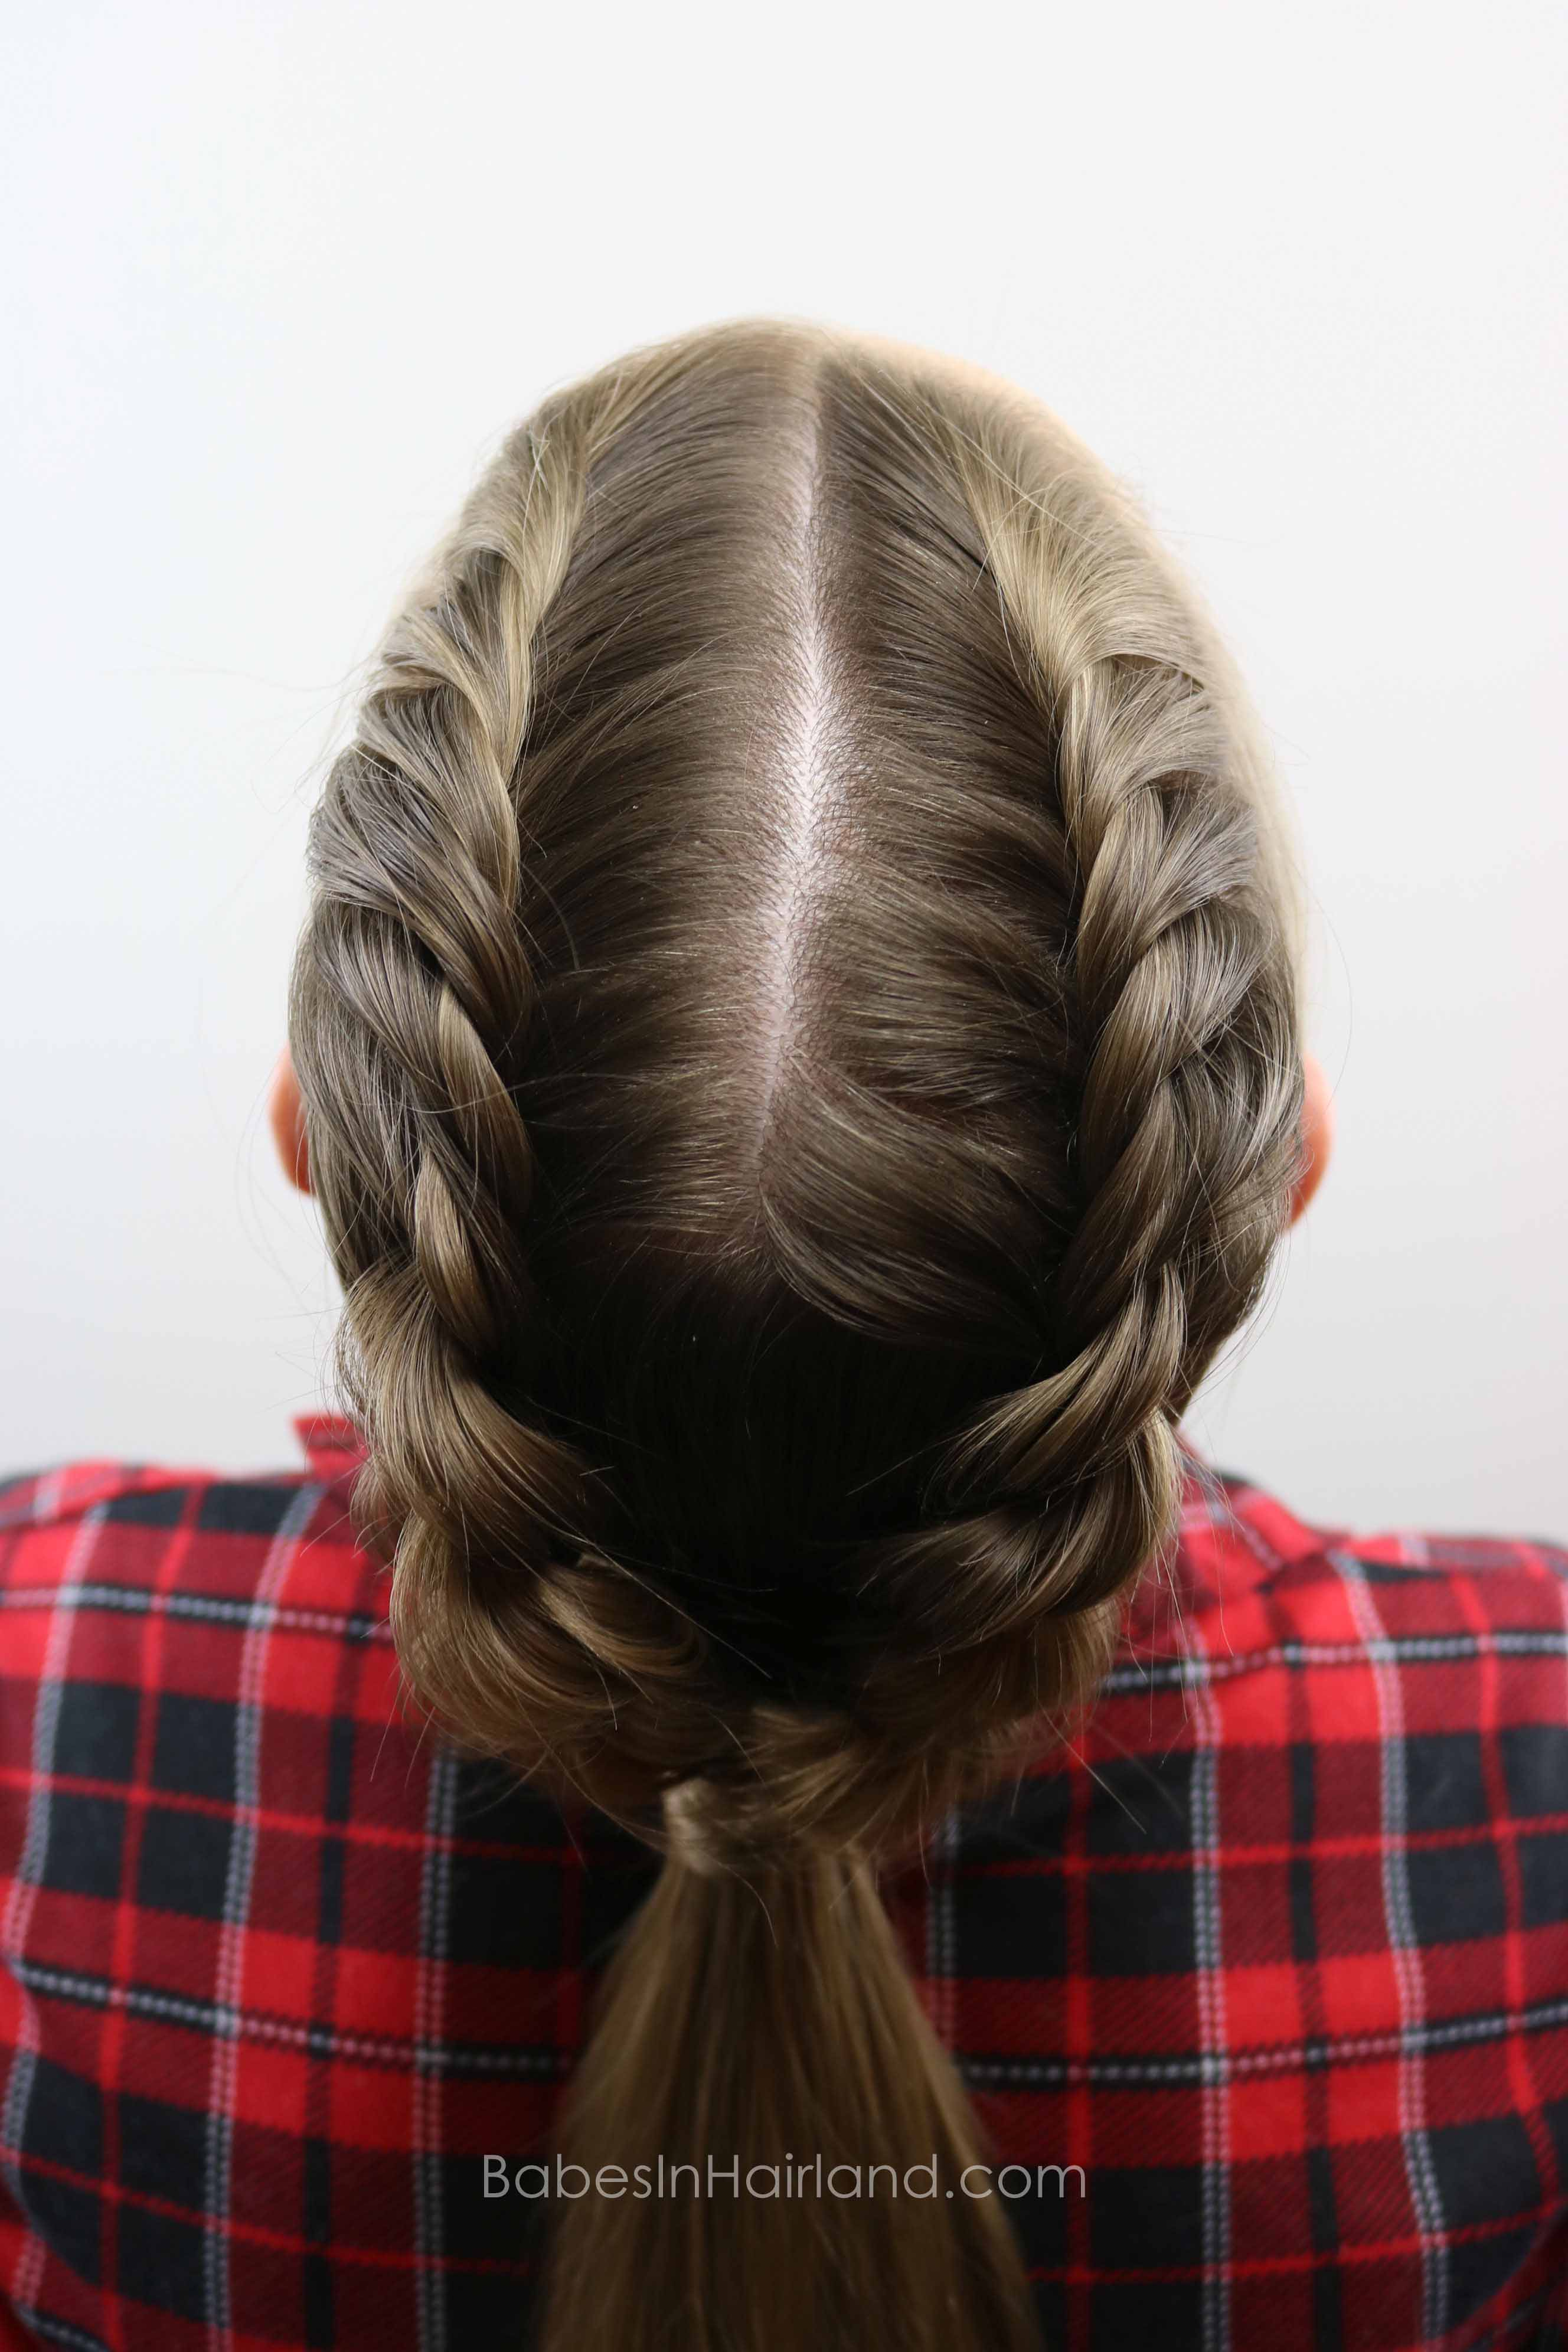 French Twists into a Ponytail from BabesInHairland.com #twists #hair #ponytail #hairstyle # ...